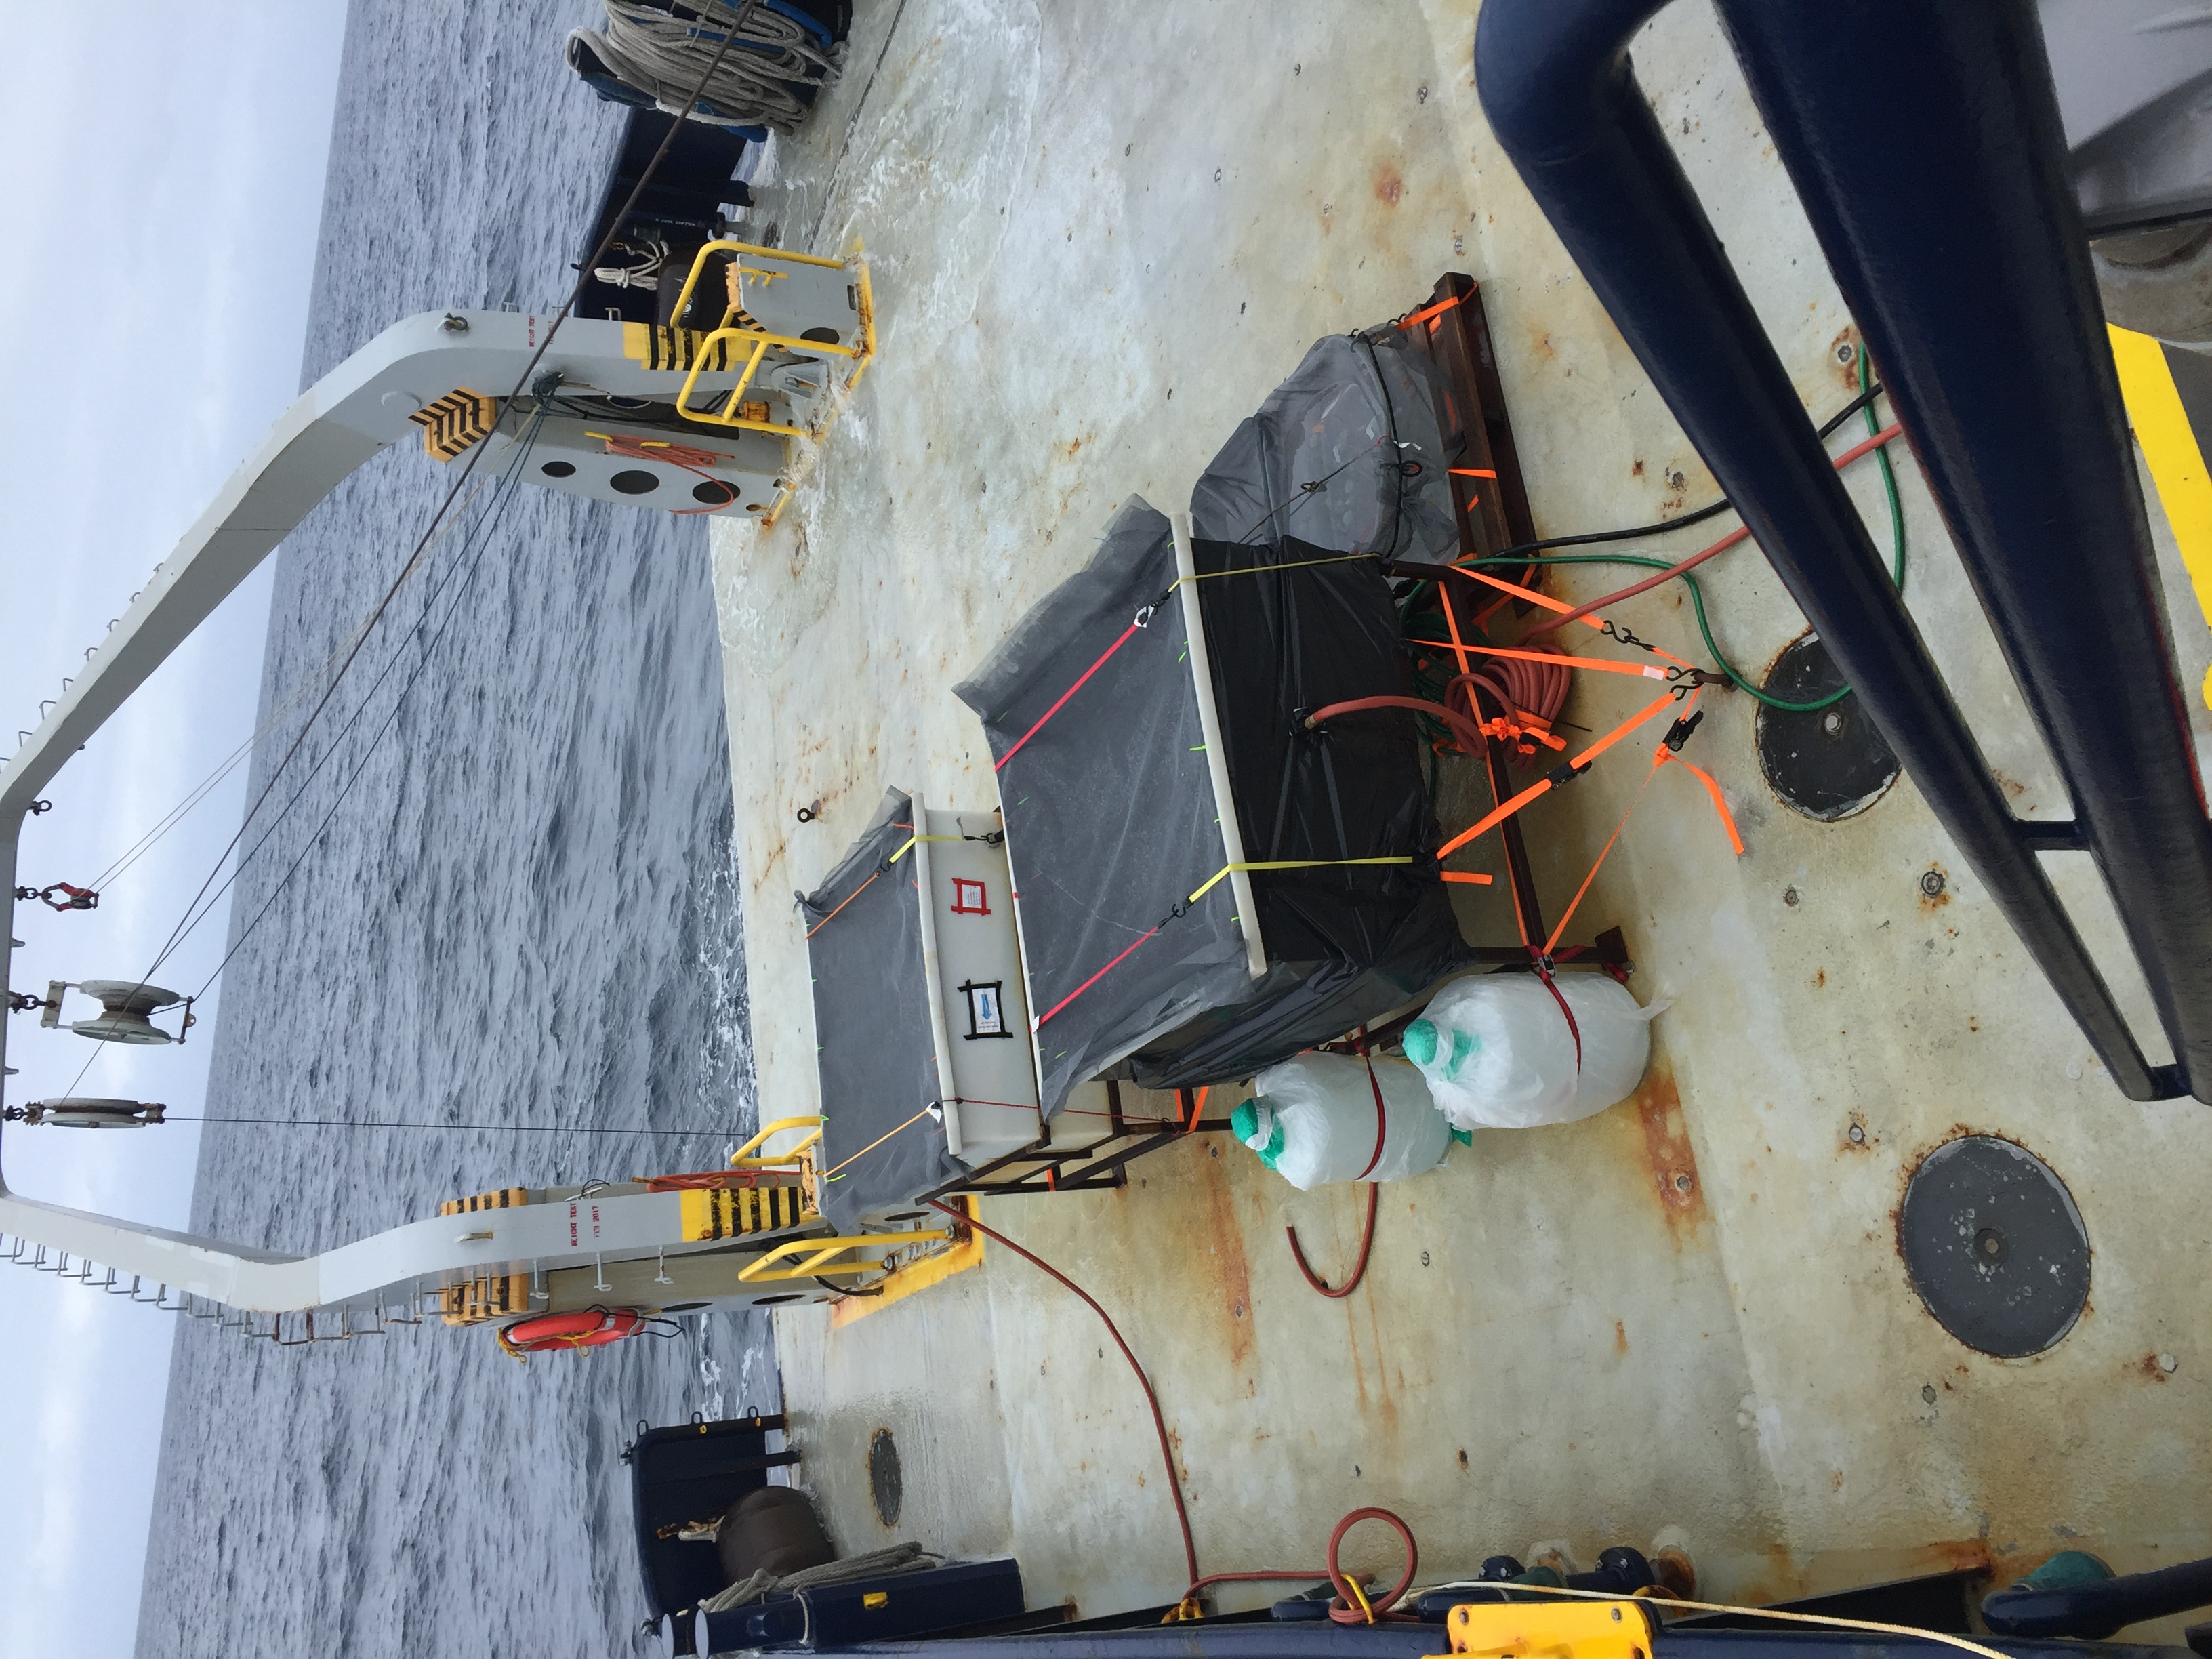 Incubators R/V Sproul